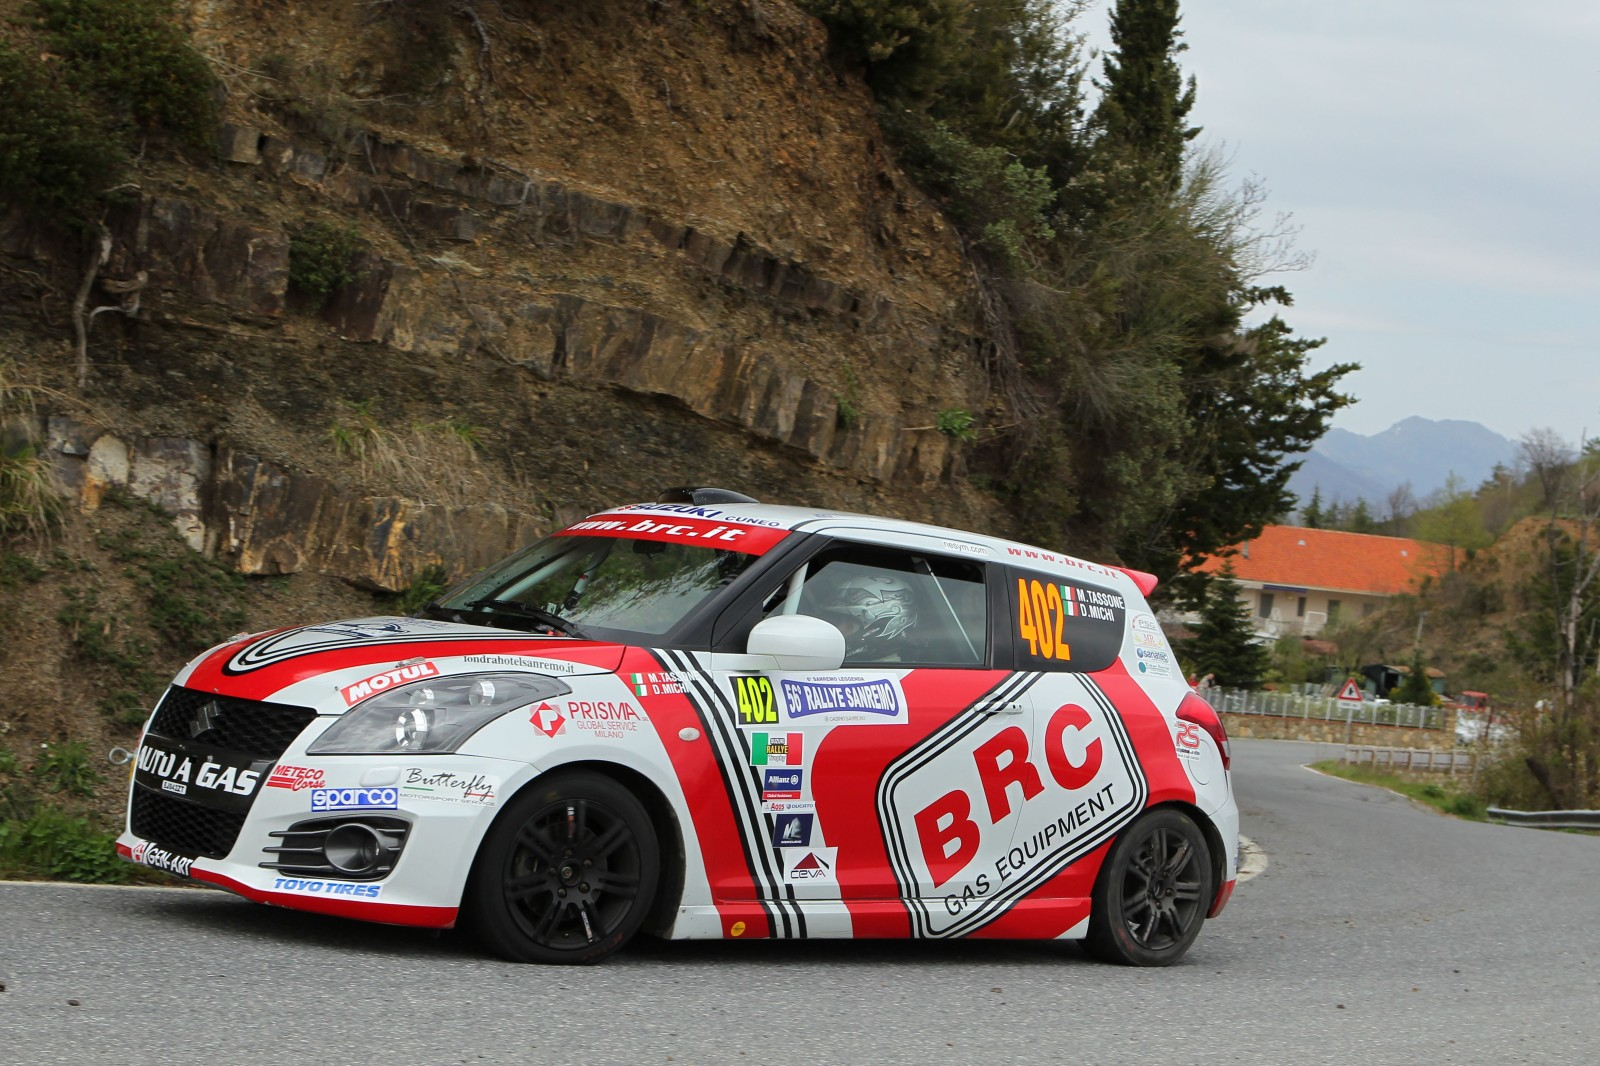 Michele Tassone, Danile Michi (Suzuki Swifr R1 #402, Brc Racing Team)